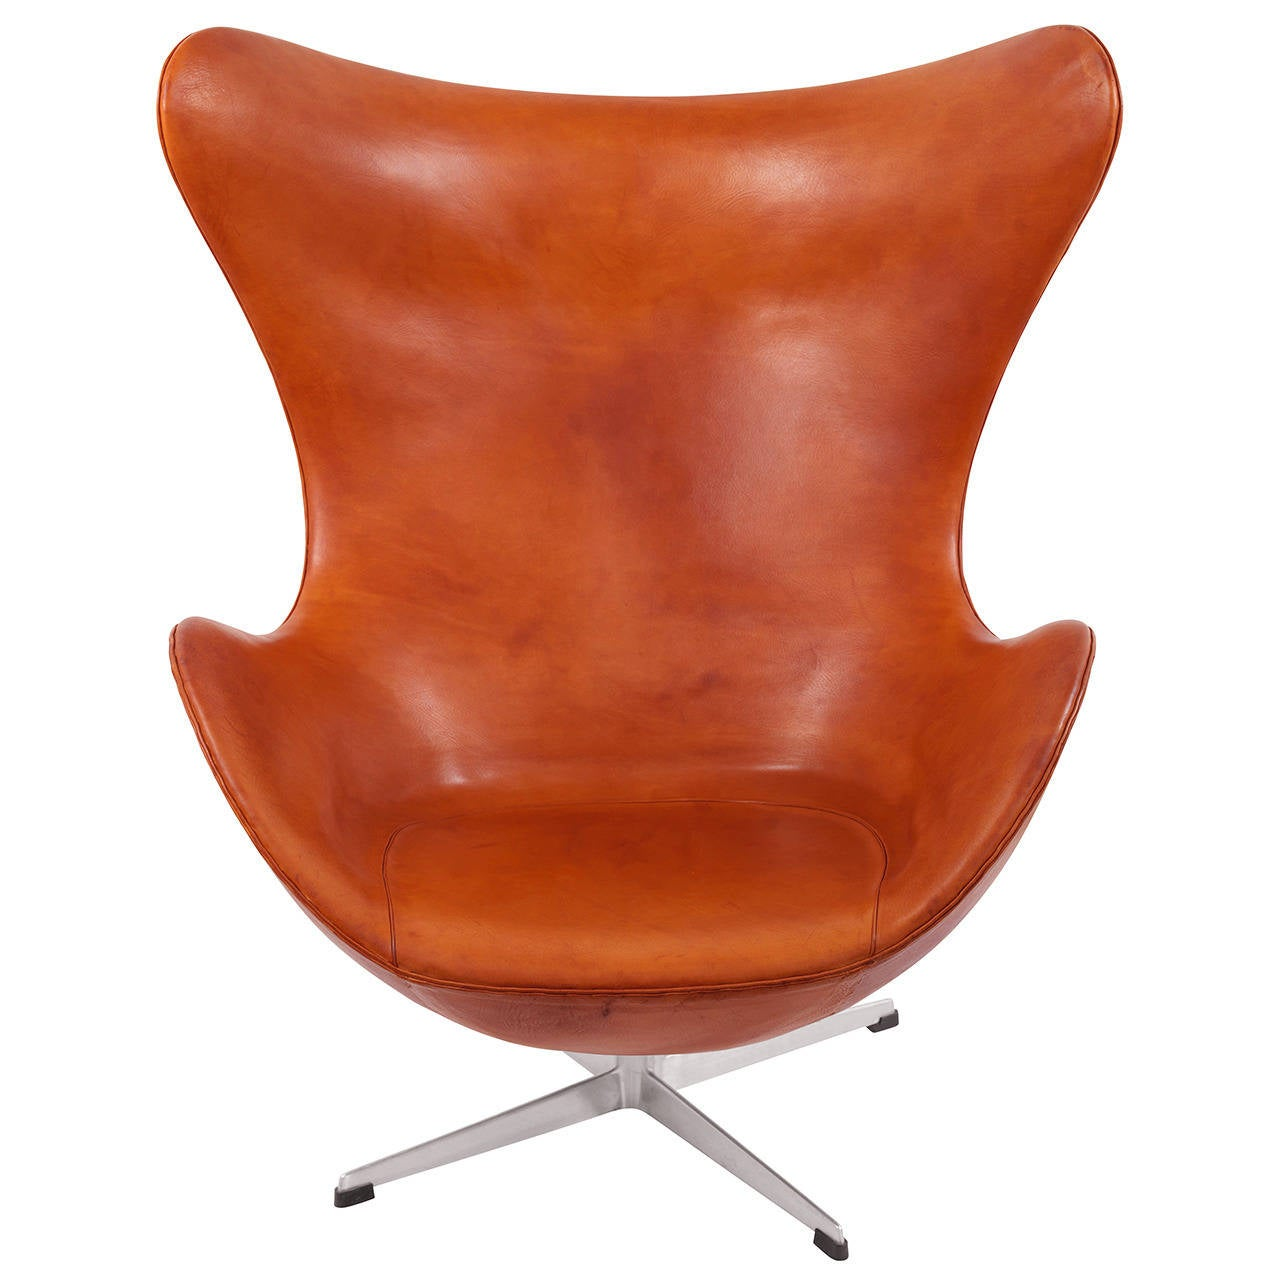 stunning and early egg chair by arne jacobsen 1958 for. Black Bedroom Furniture Sets. Home Design Ideas